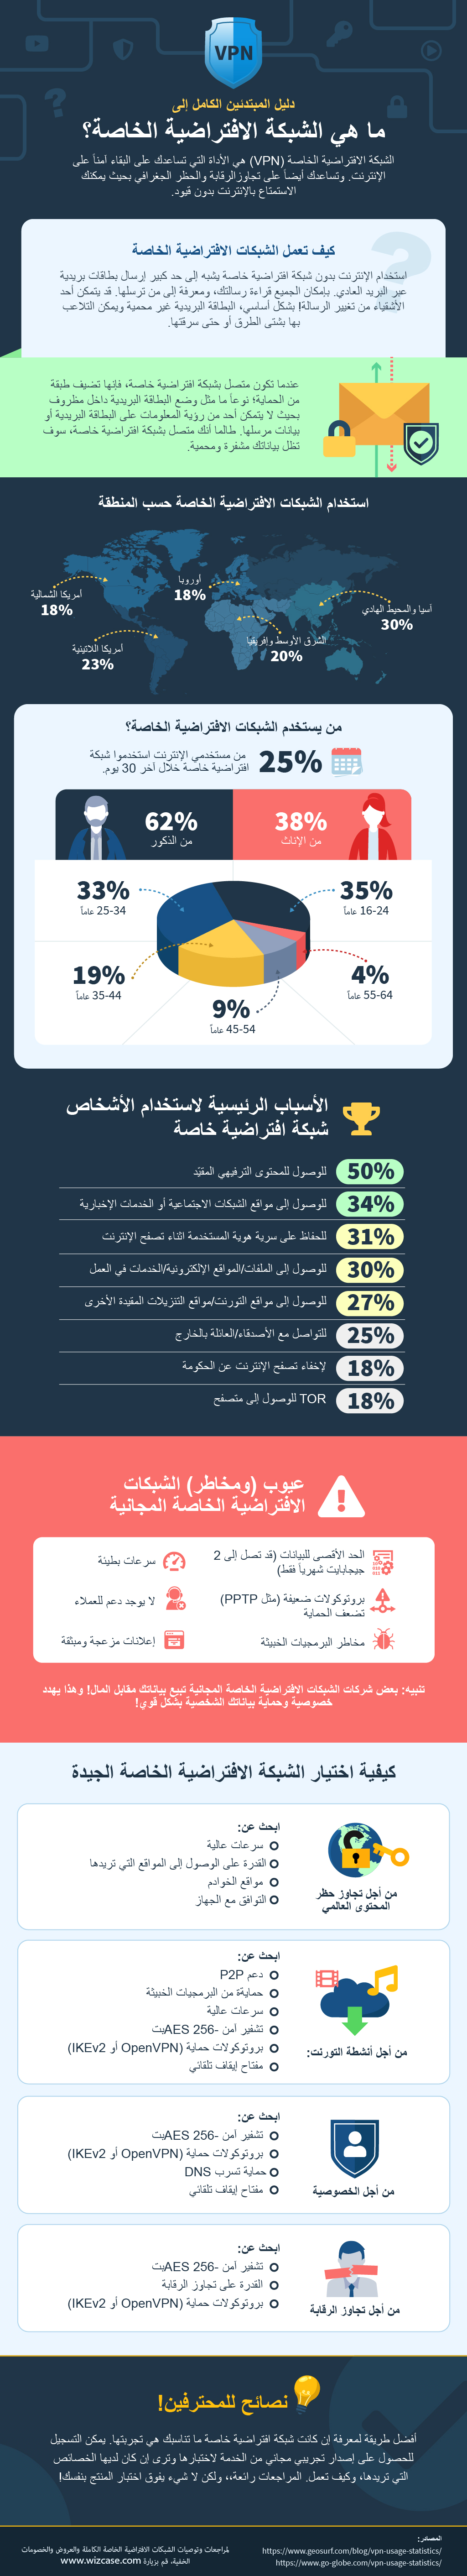 infographic guide to what is a VPN in Arabic